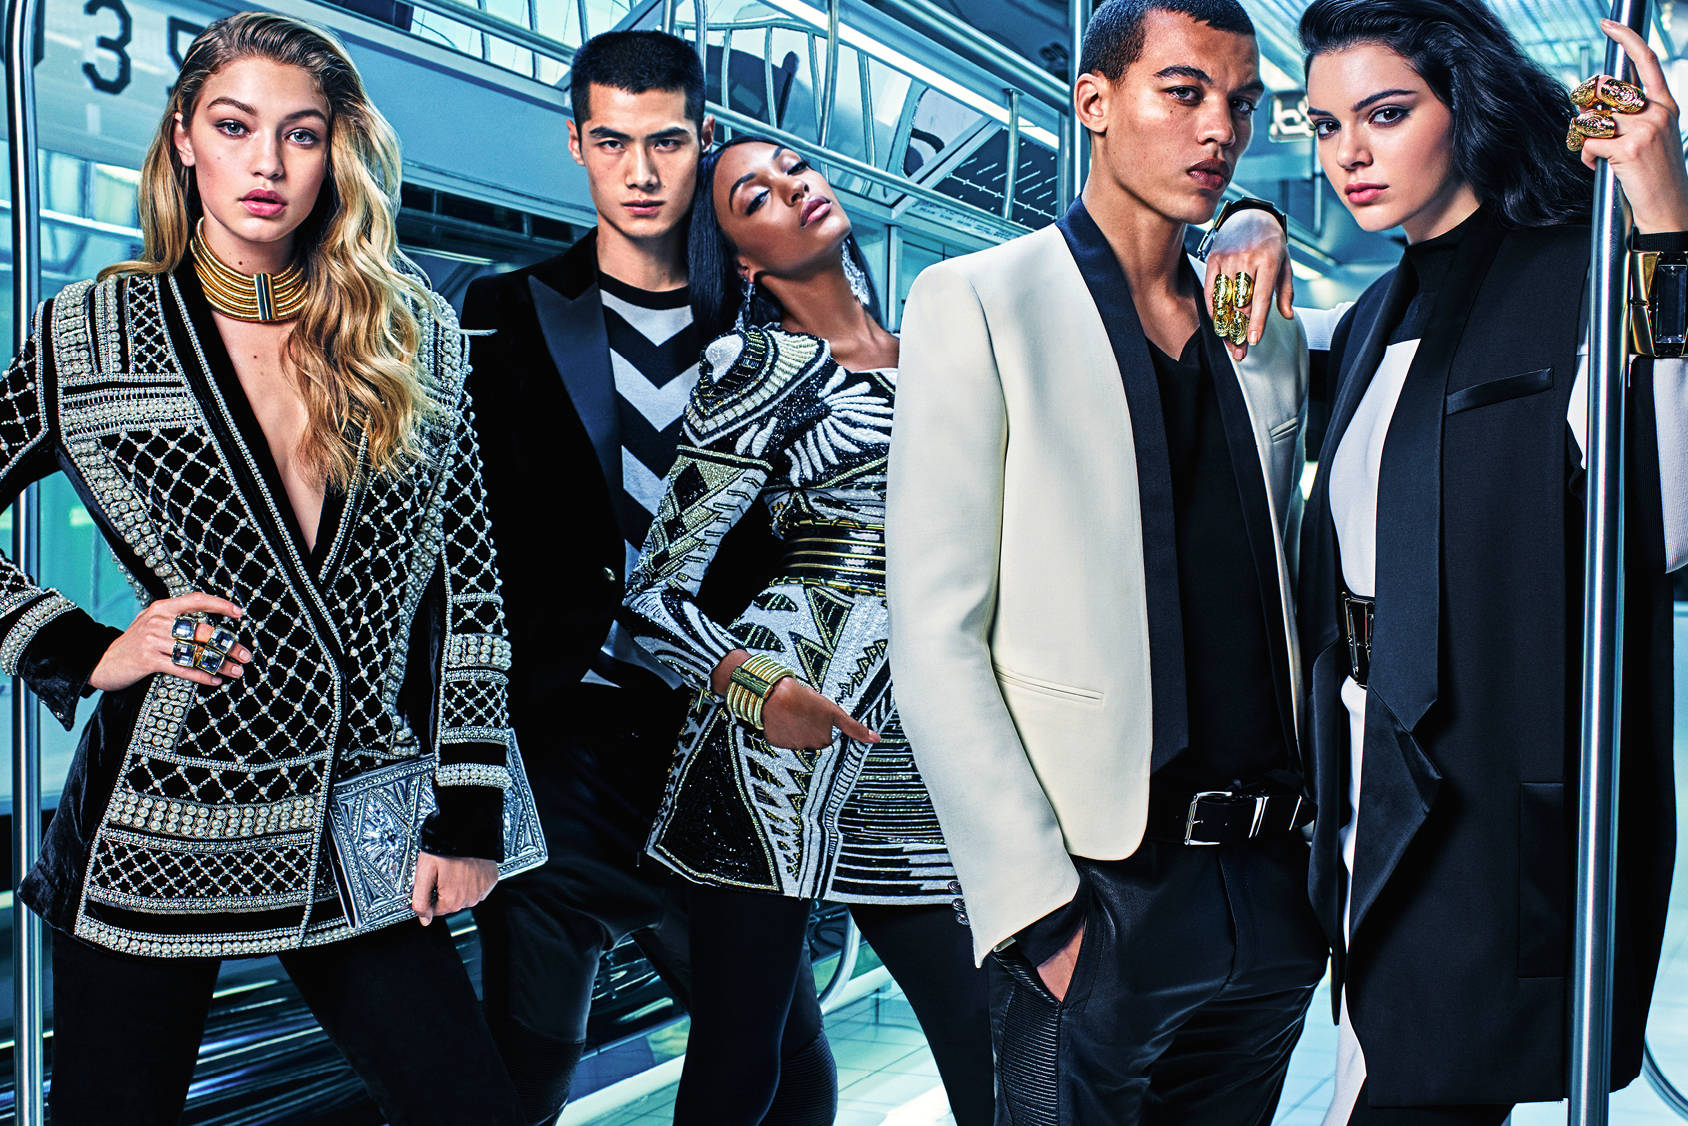 Gigi Hadid, Jourdan Dunn, Kendall Jenner, Hao Yun Xiang and Dudley O'Shaughnessy photographed by Mario Sorrenti.